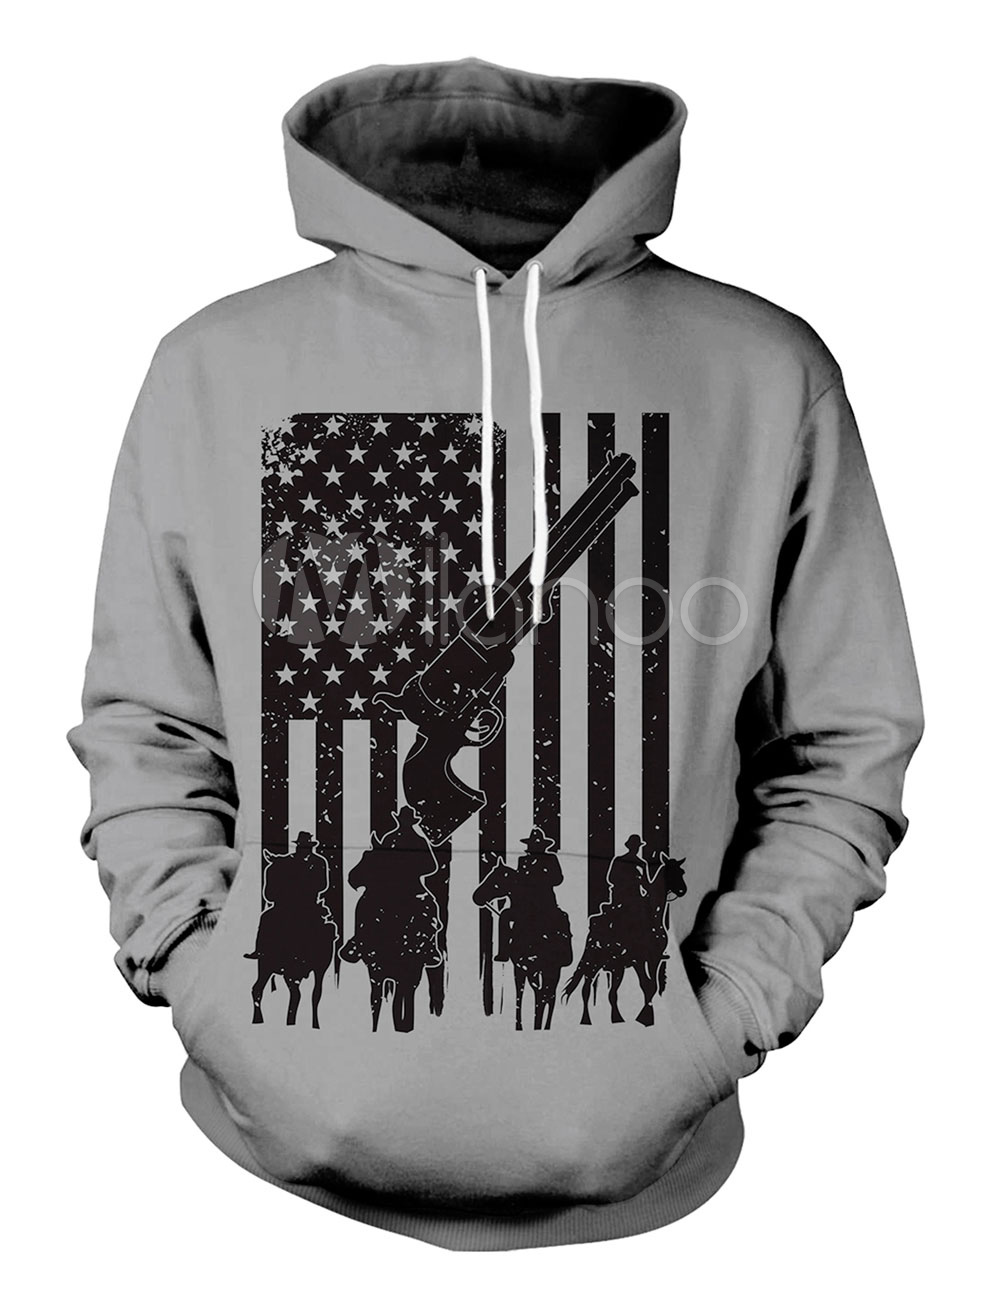 e44d1f0f Hoodie For Men Red Dead Redemption 2 Print Drawstring Long Sleeve ...